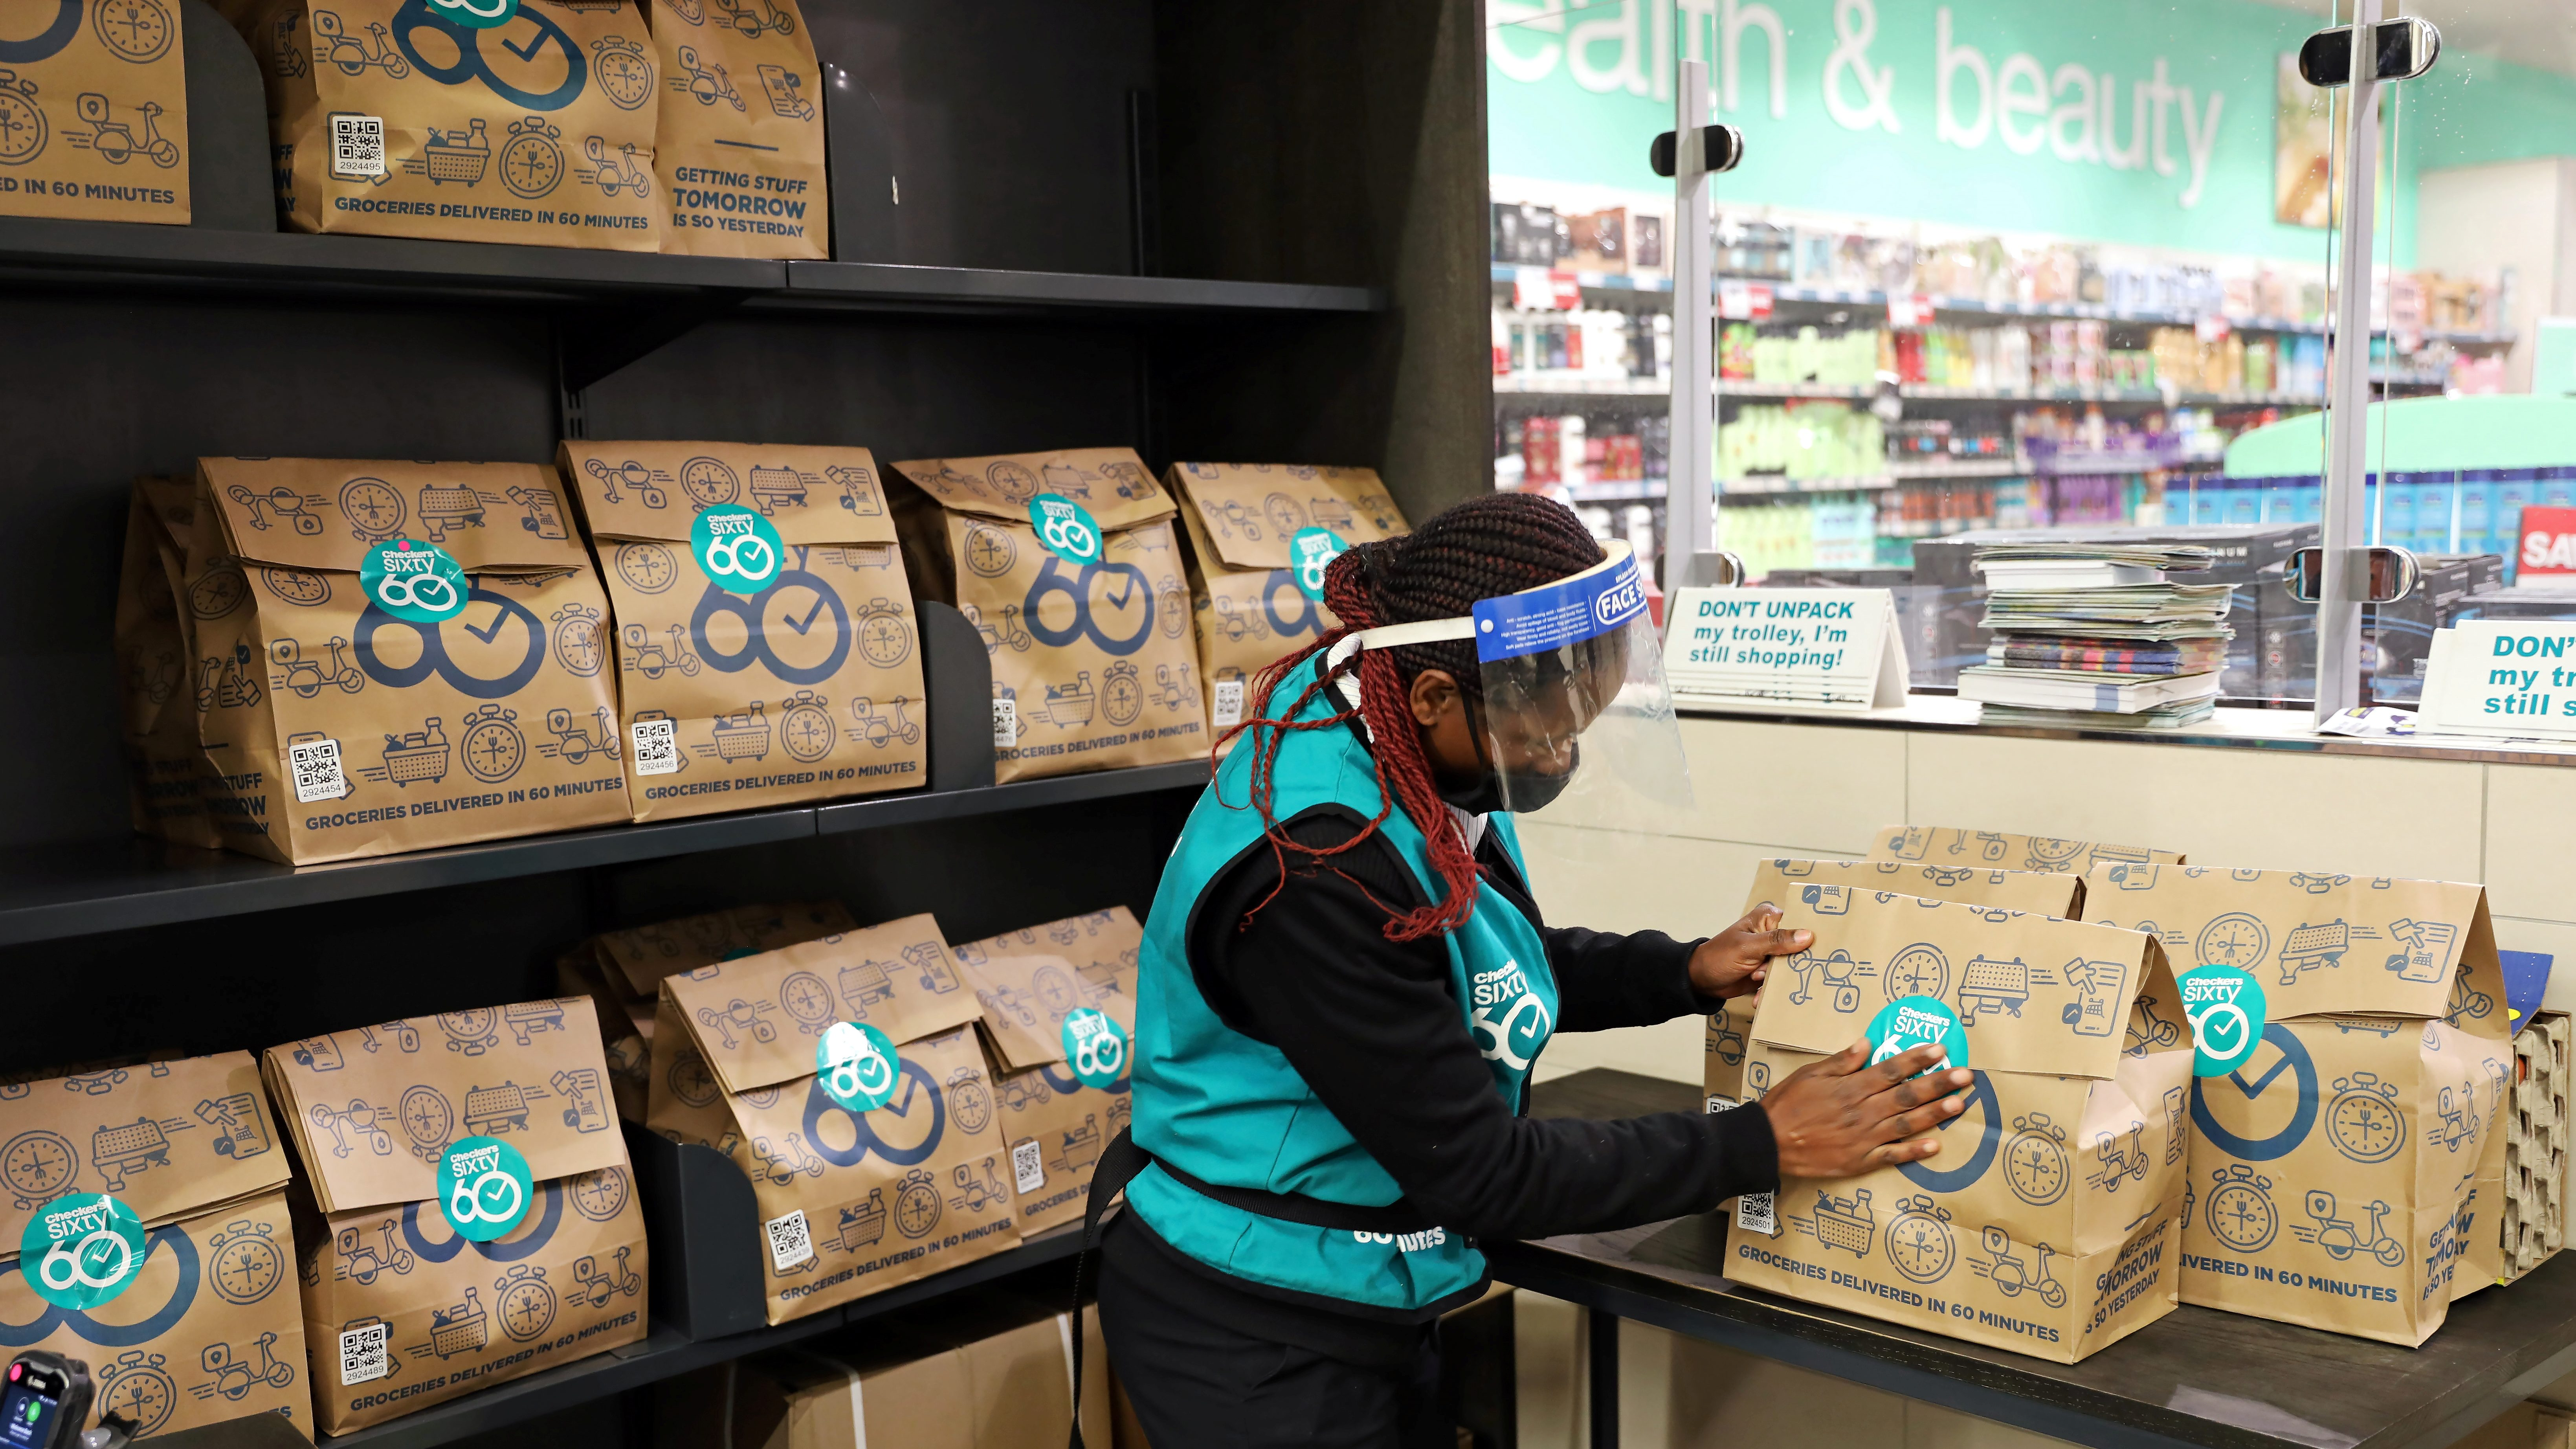 A worker sorts online orders before they are delivered to customers from a Checkers store, amid a nationwide coronavirus lockdown, in Johannesburg, South Africa, July 14, 2020.